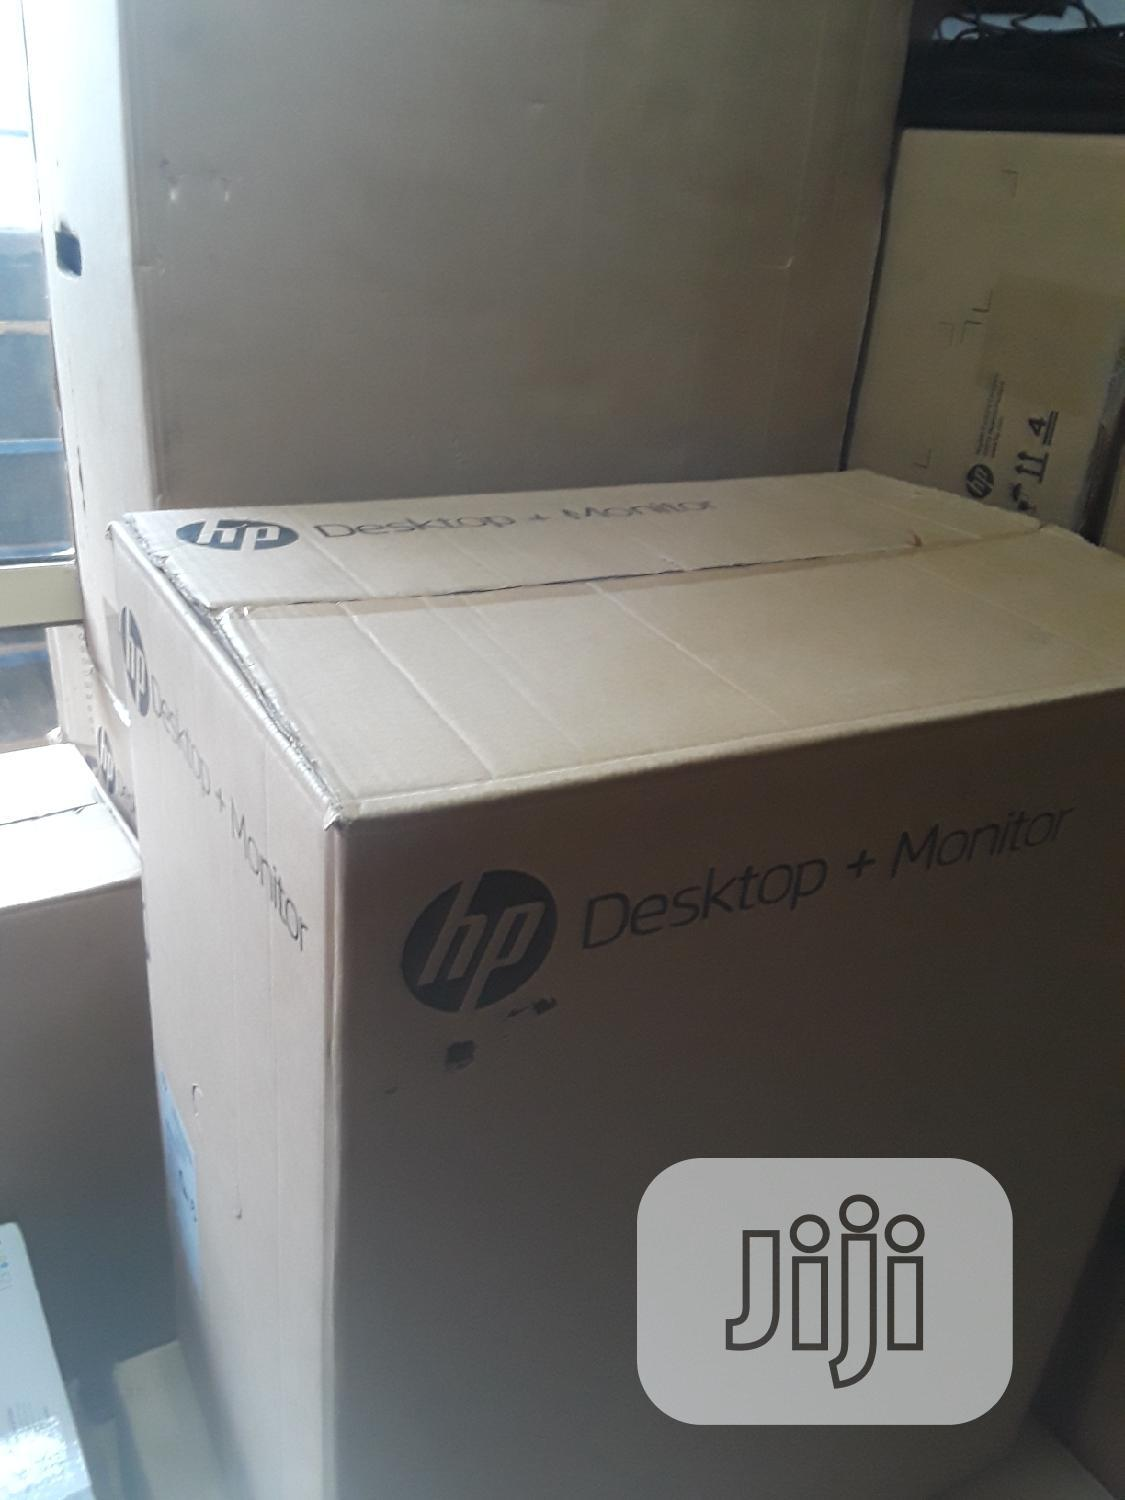 New Desktop Computer HP 4GB Intel Core i3 HDD 500GB | Laptops & Computers for sale in Ikoyi, Lagos State, Nigeria